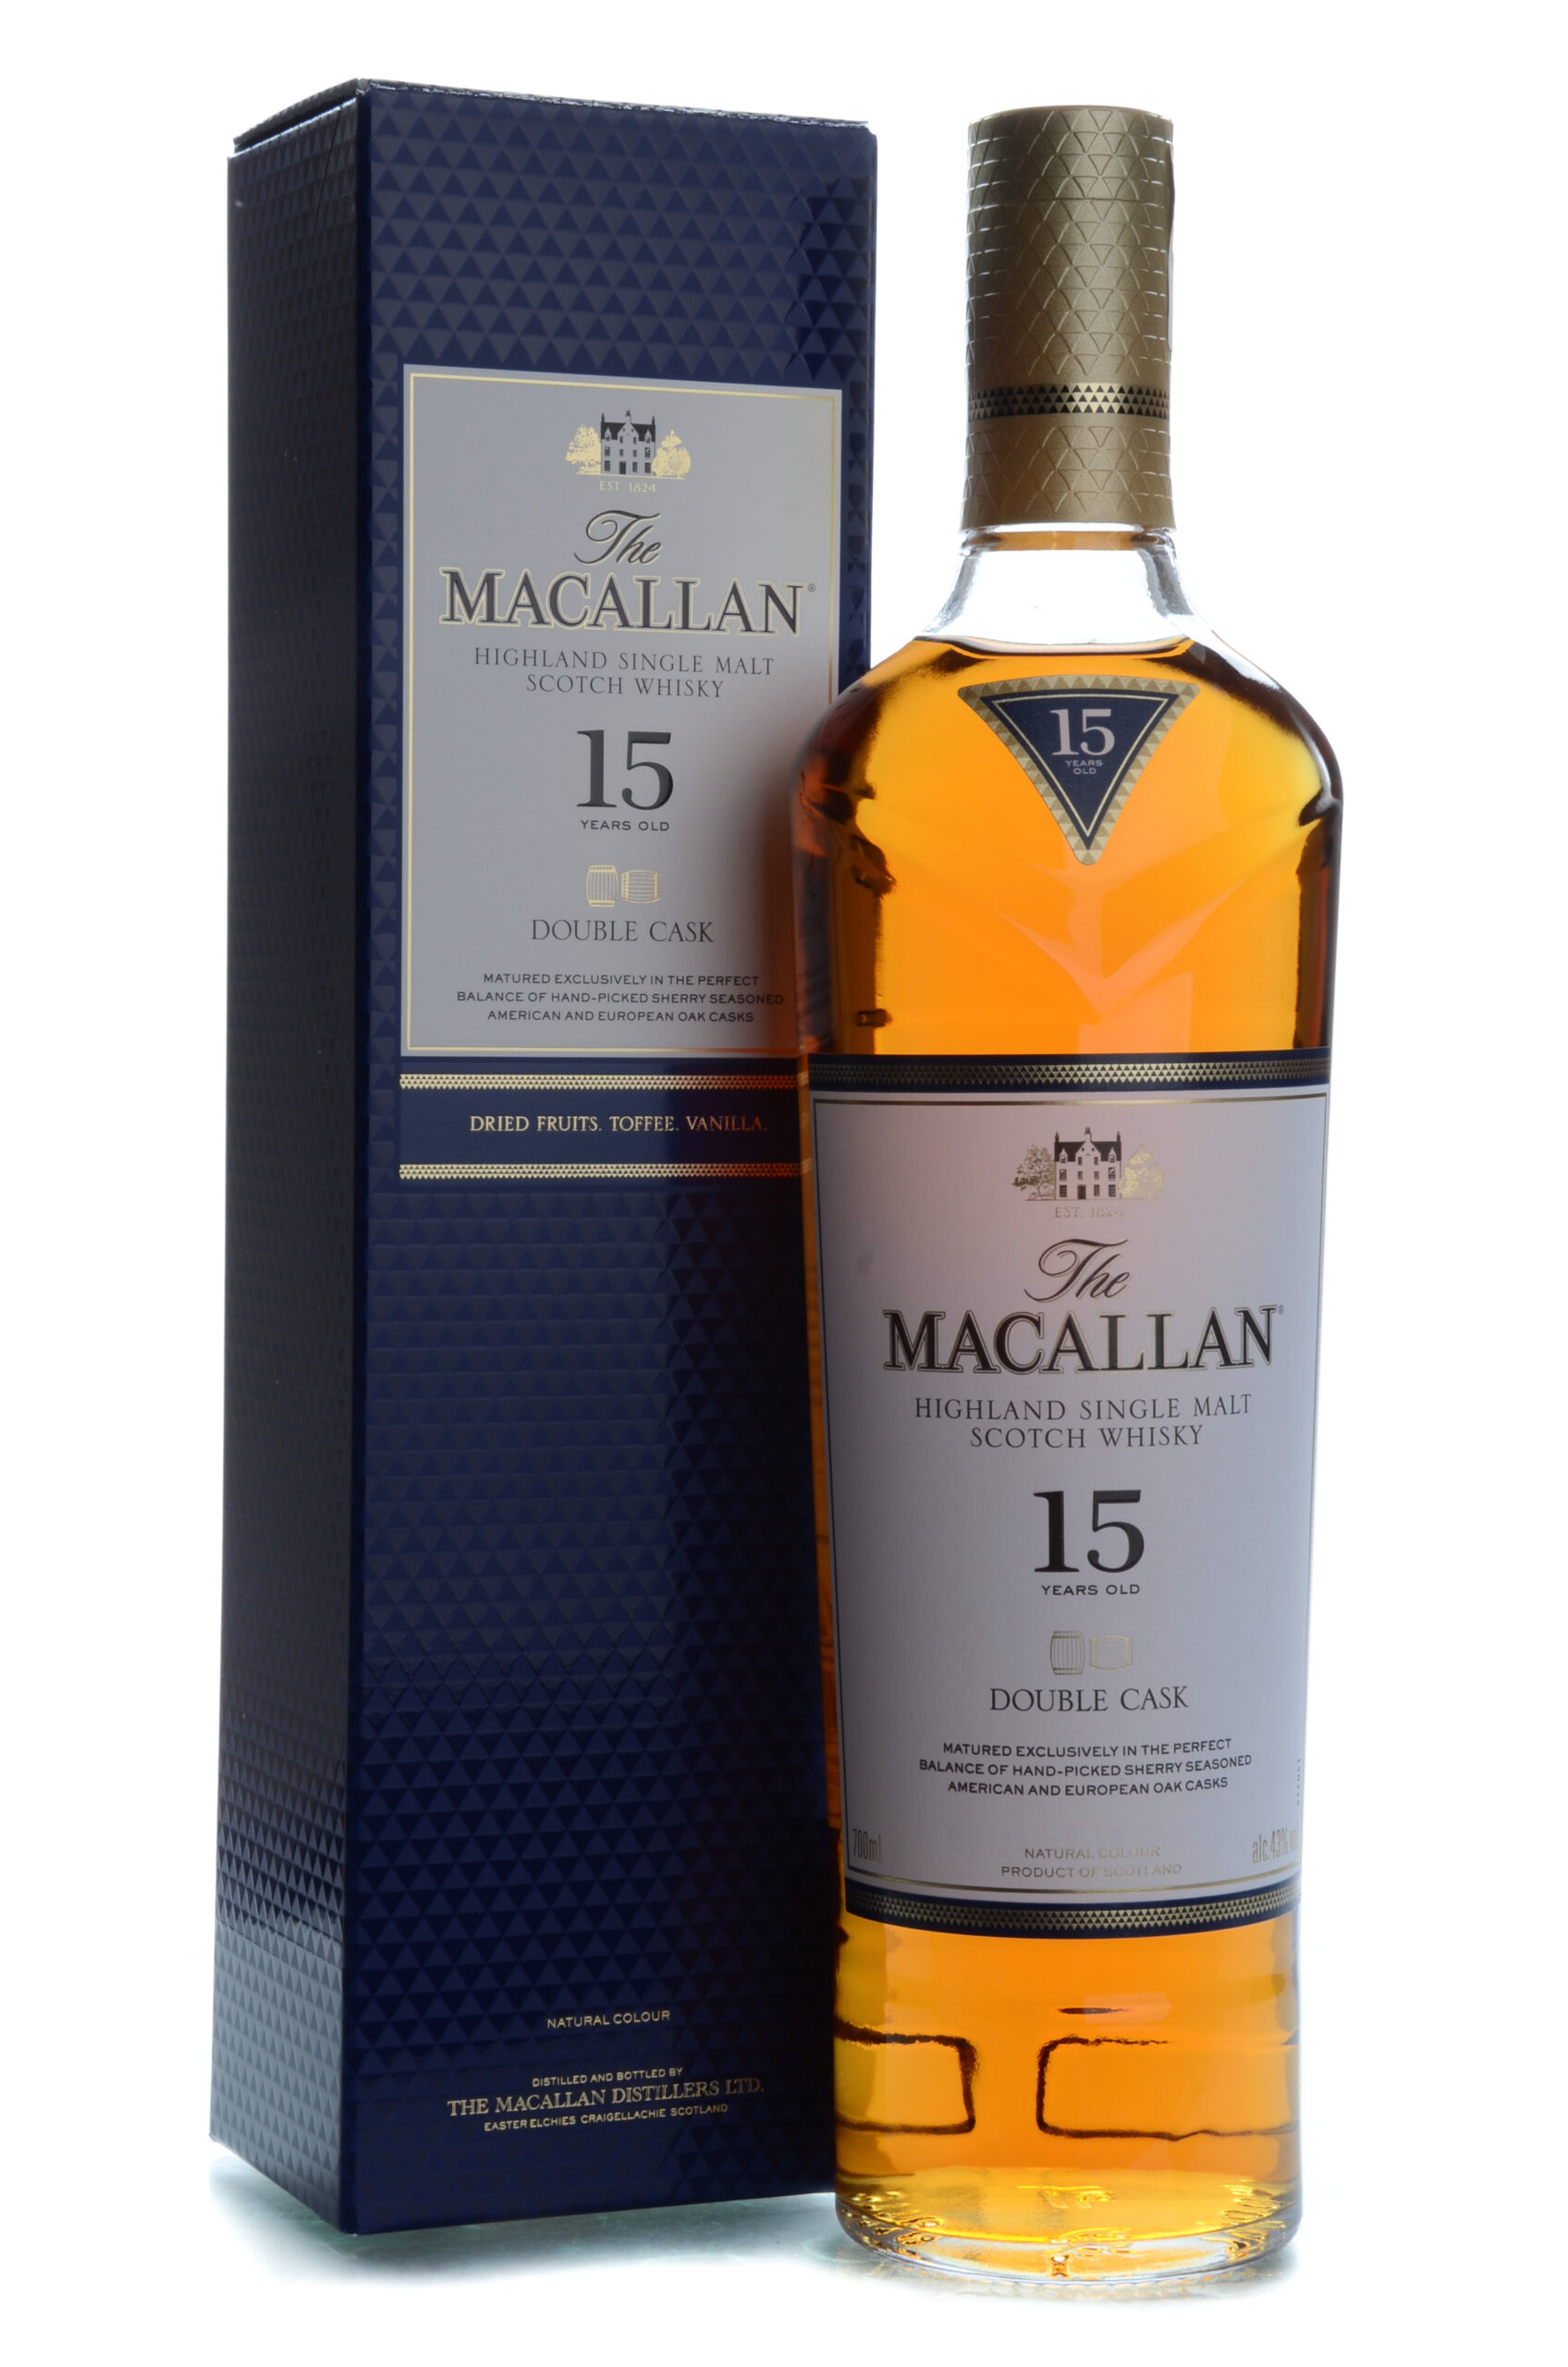 The Macallan 15 years double cask